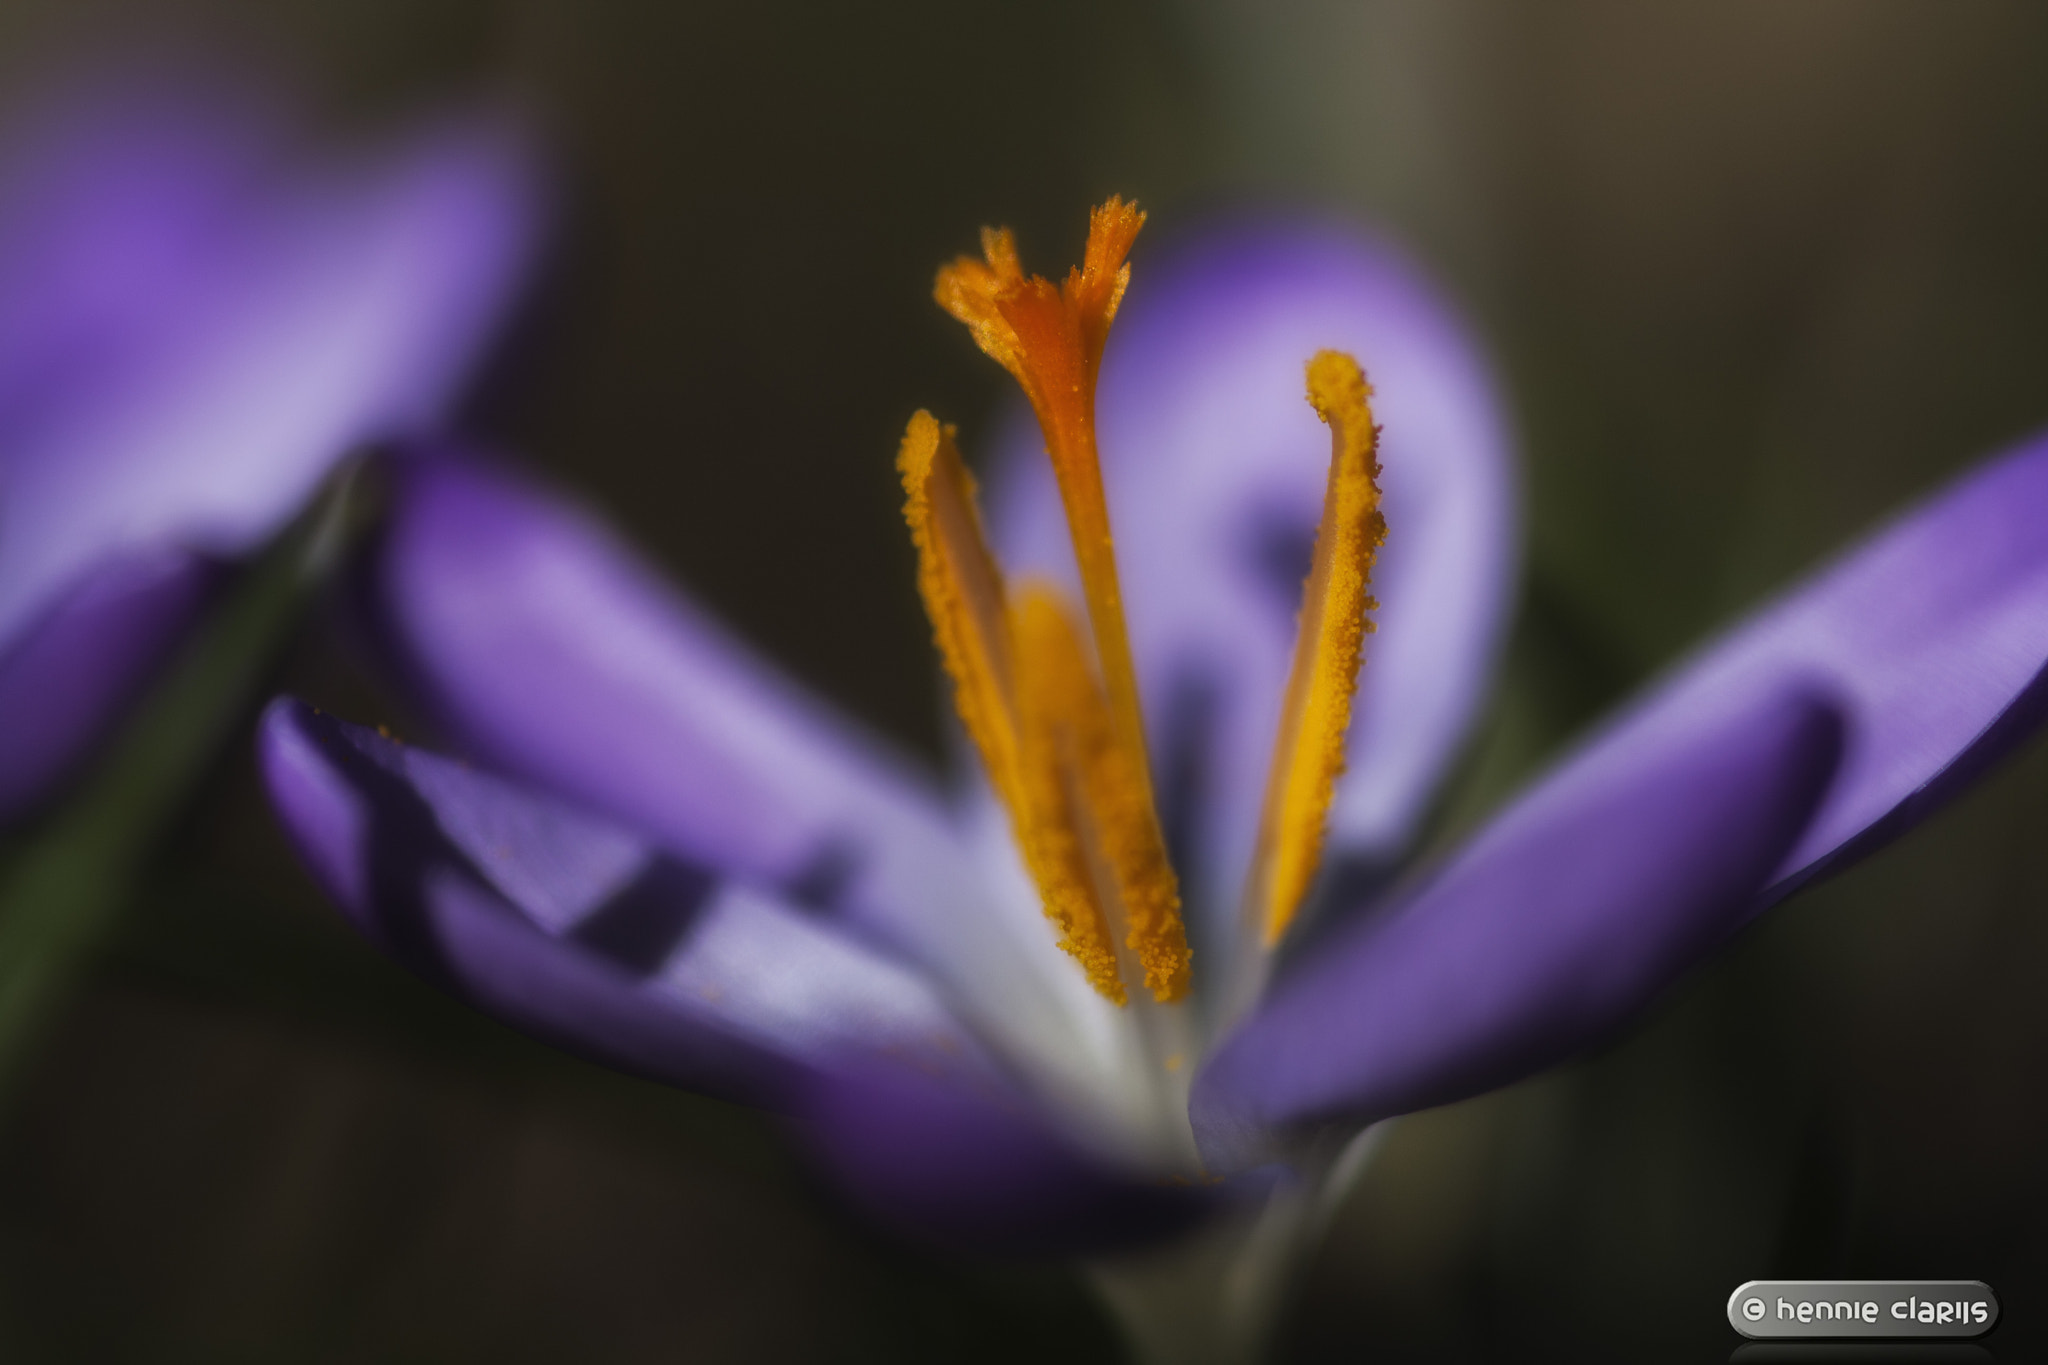 Photograph A Sign of Spring by Hennie Clarijs on 500px